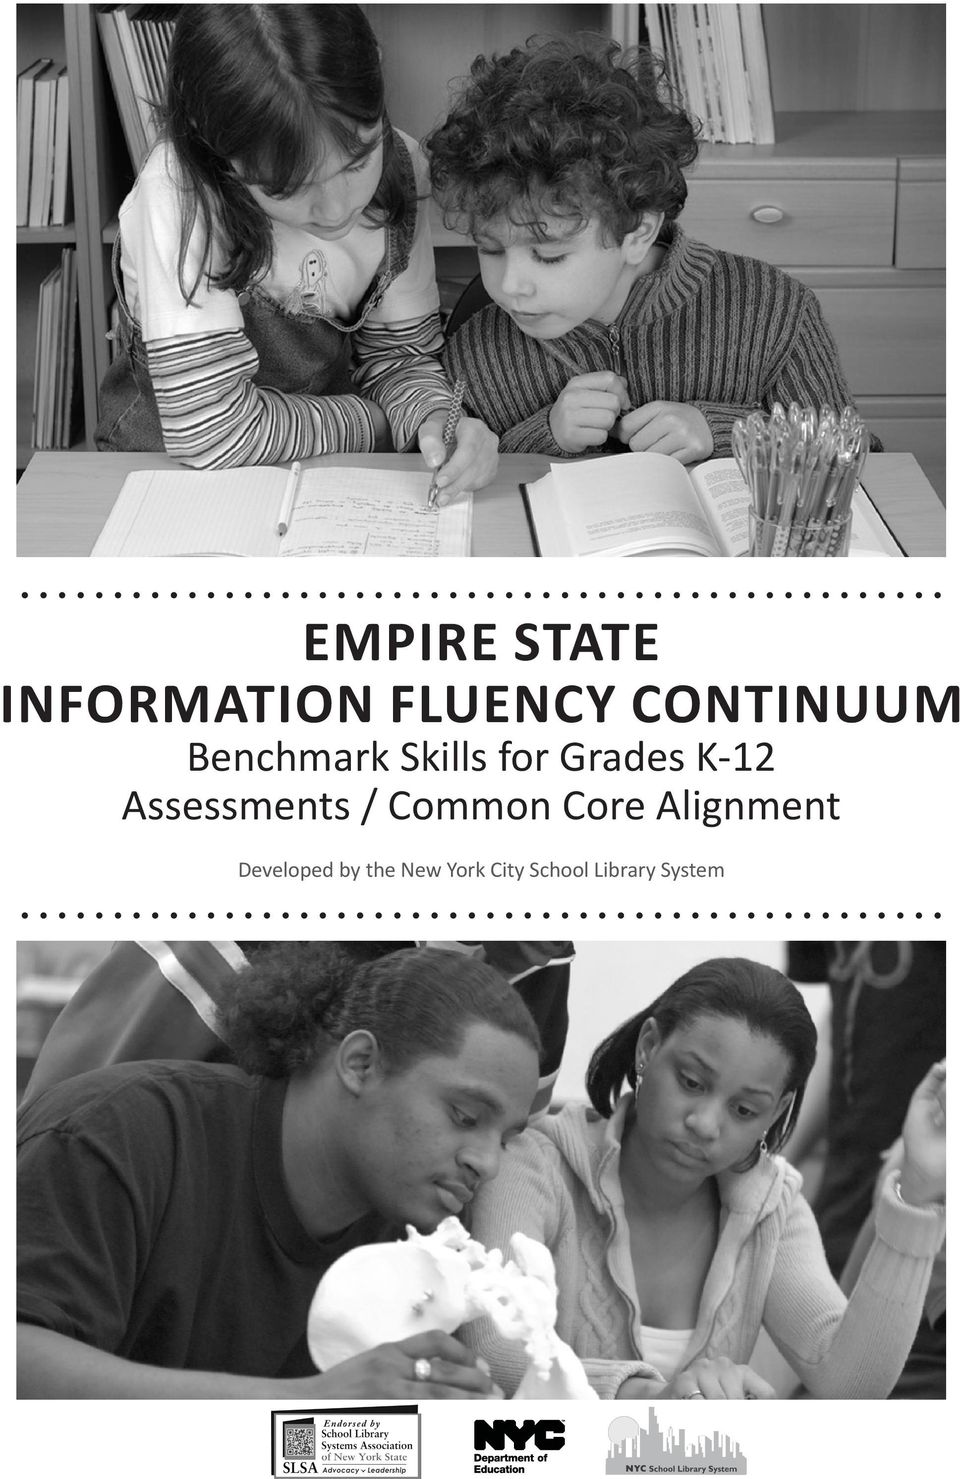 K-12 Assessments / Common Core Alignment